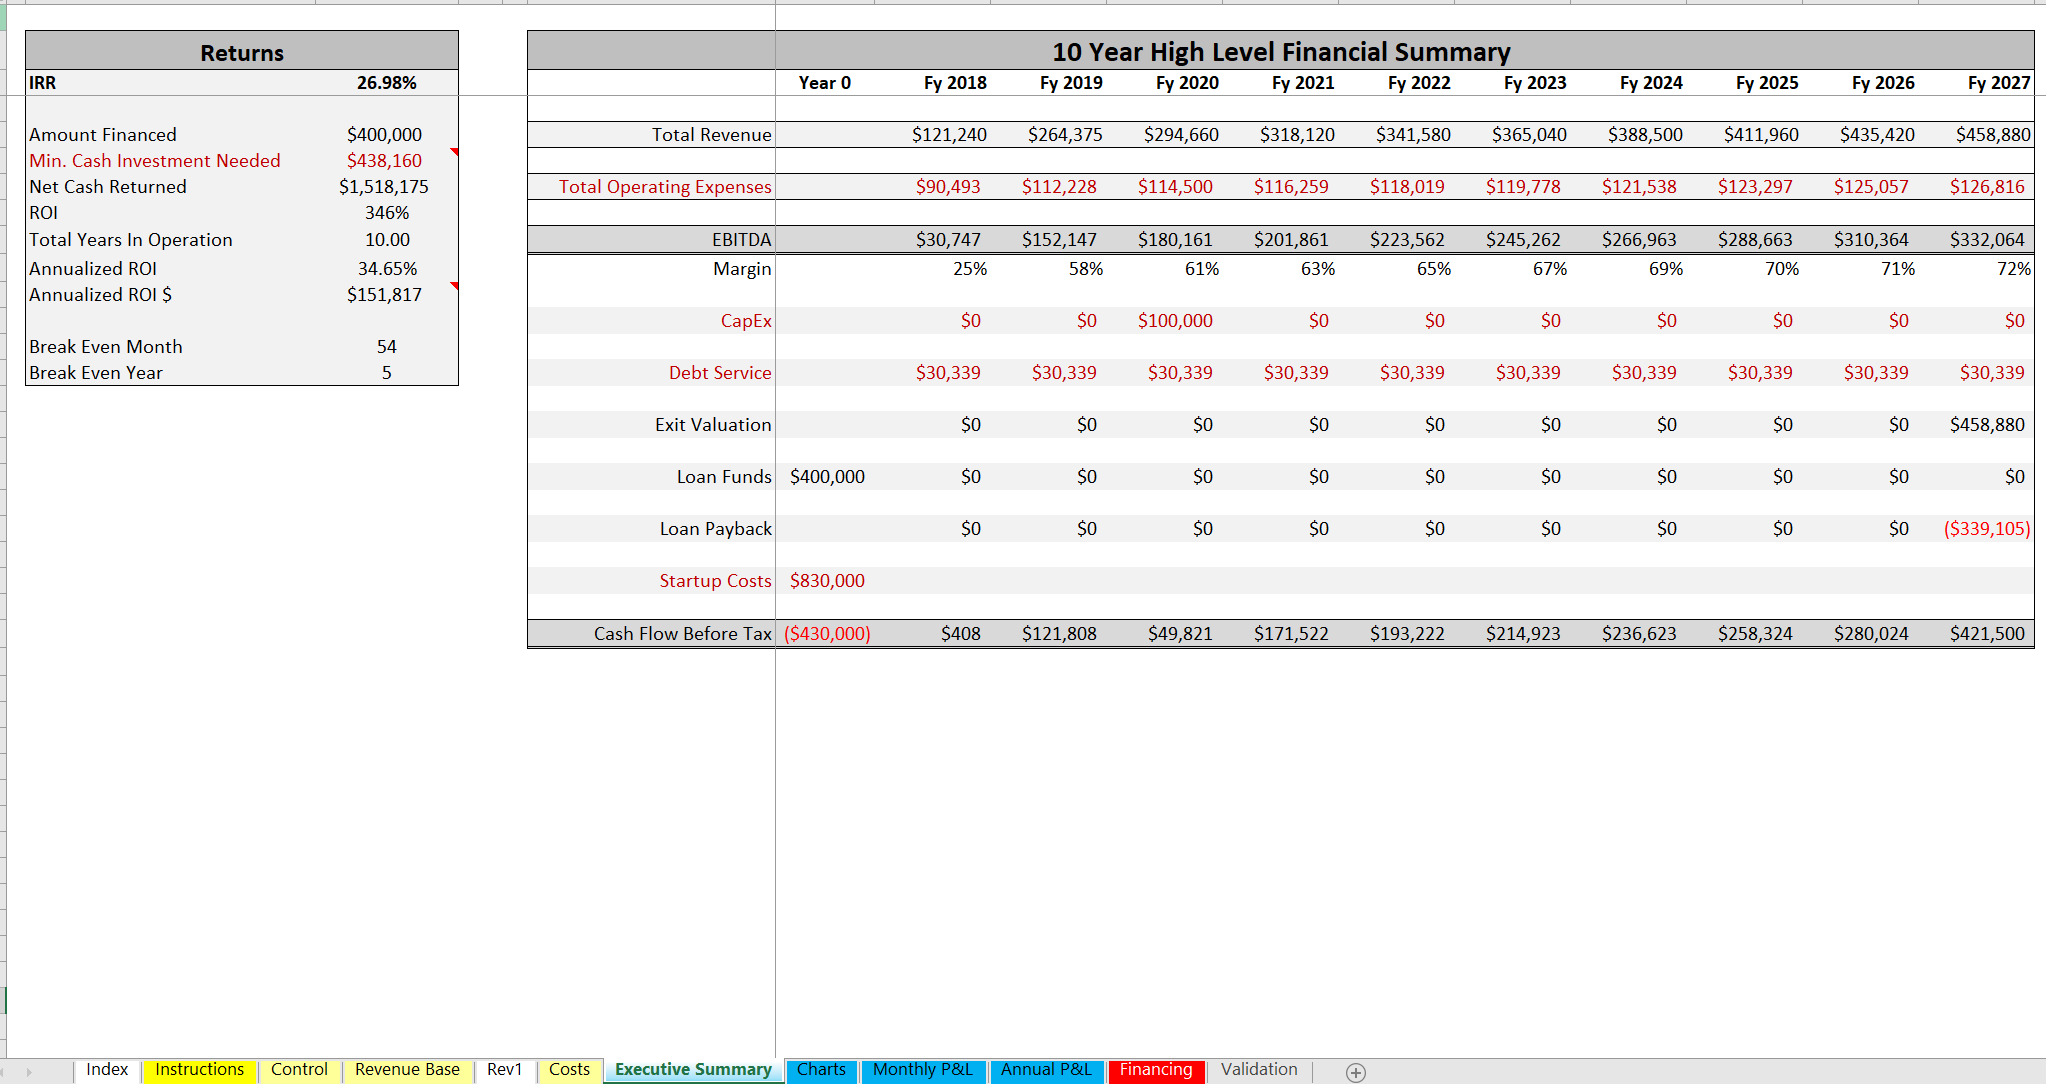 Hair Salon / Beauty Parlor DCF Analysis and Pro Forma: 10 Year Model